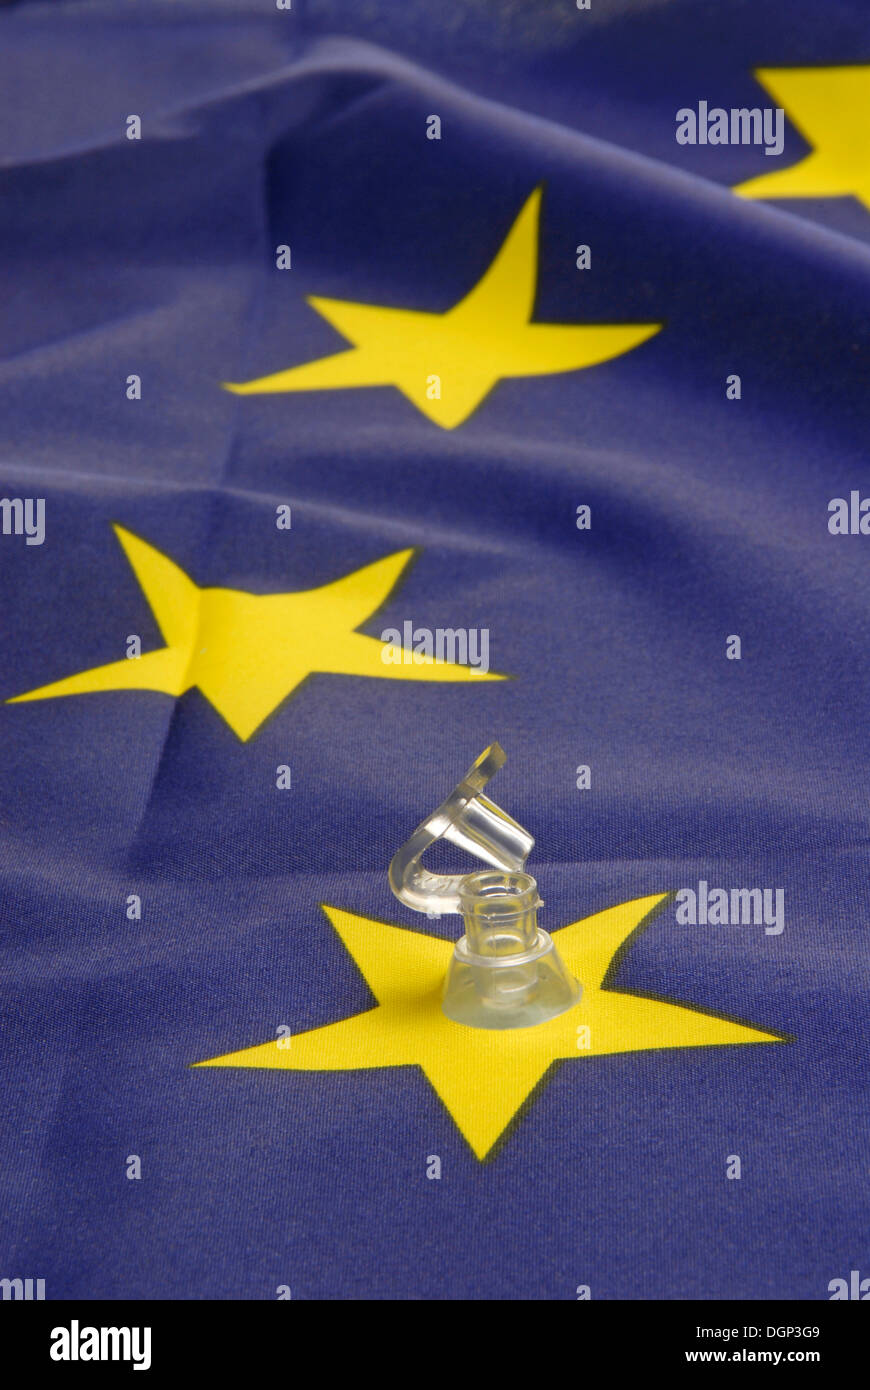 Flag of Europe with an open valve, symbolic image of Europe running out of steam, Greek debt crisis - Stock Image